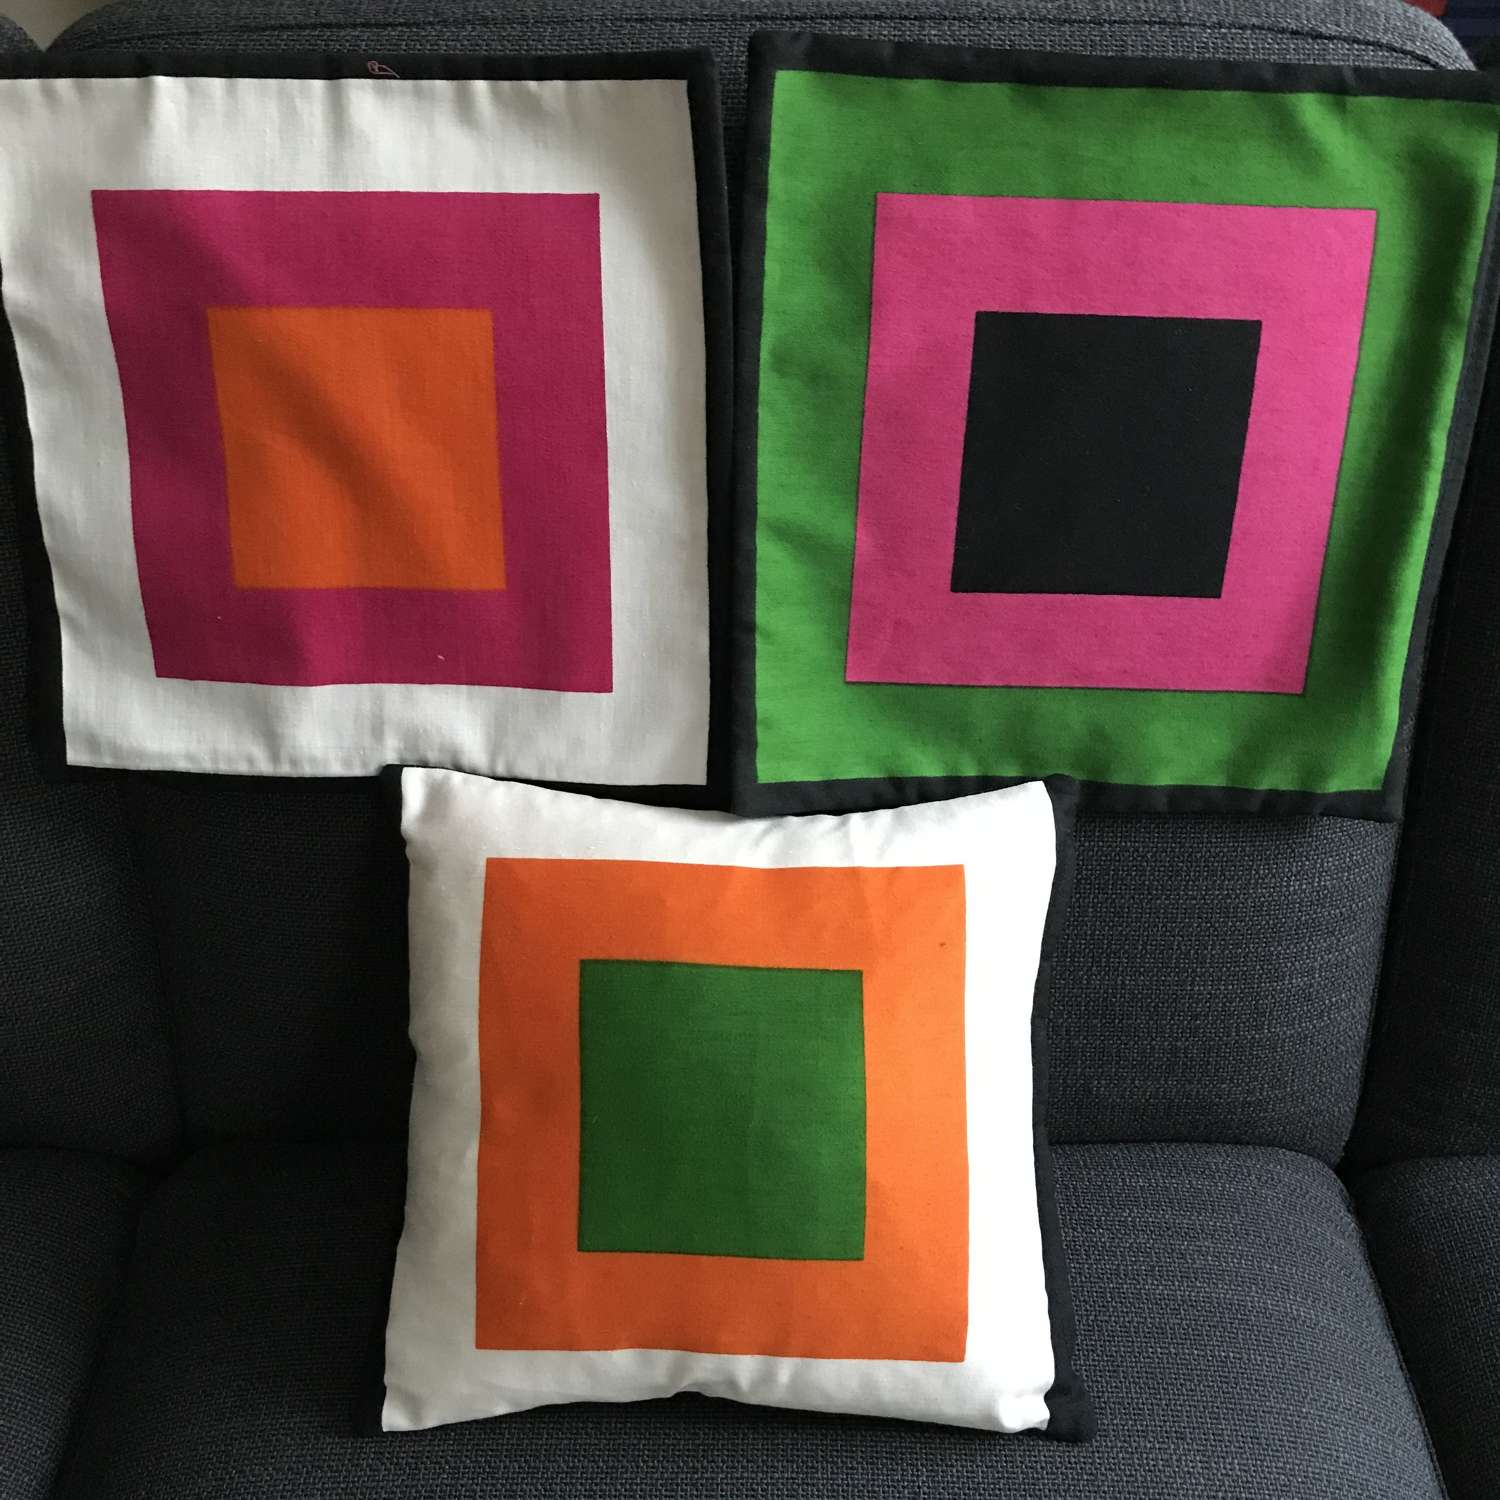 Small cushion covers.'Pritsi' by Marjatta Metsovaara, Finland 1968